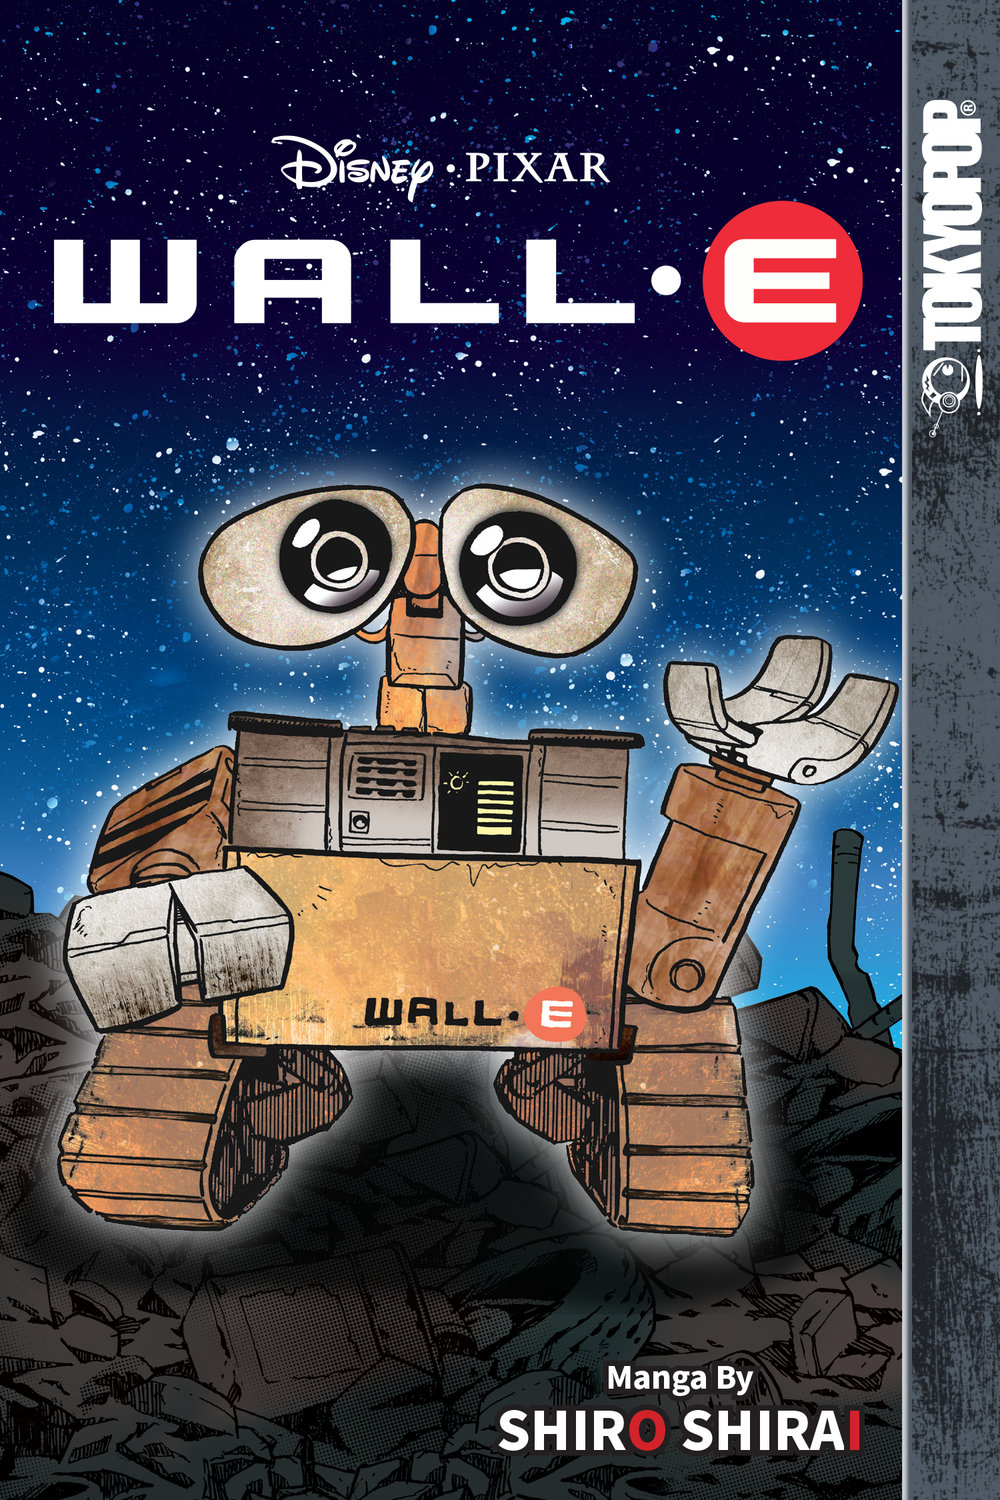 DisneyPixar_WALLE_CoverBG.jpg